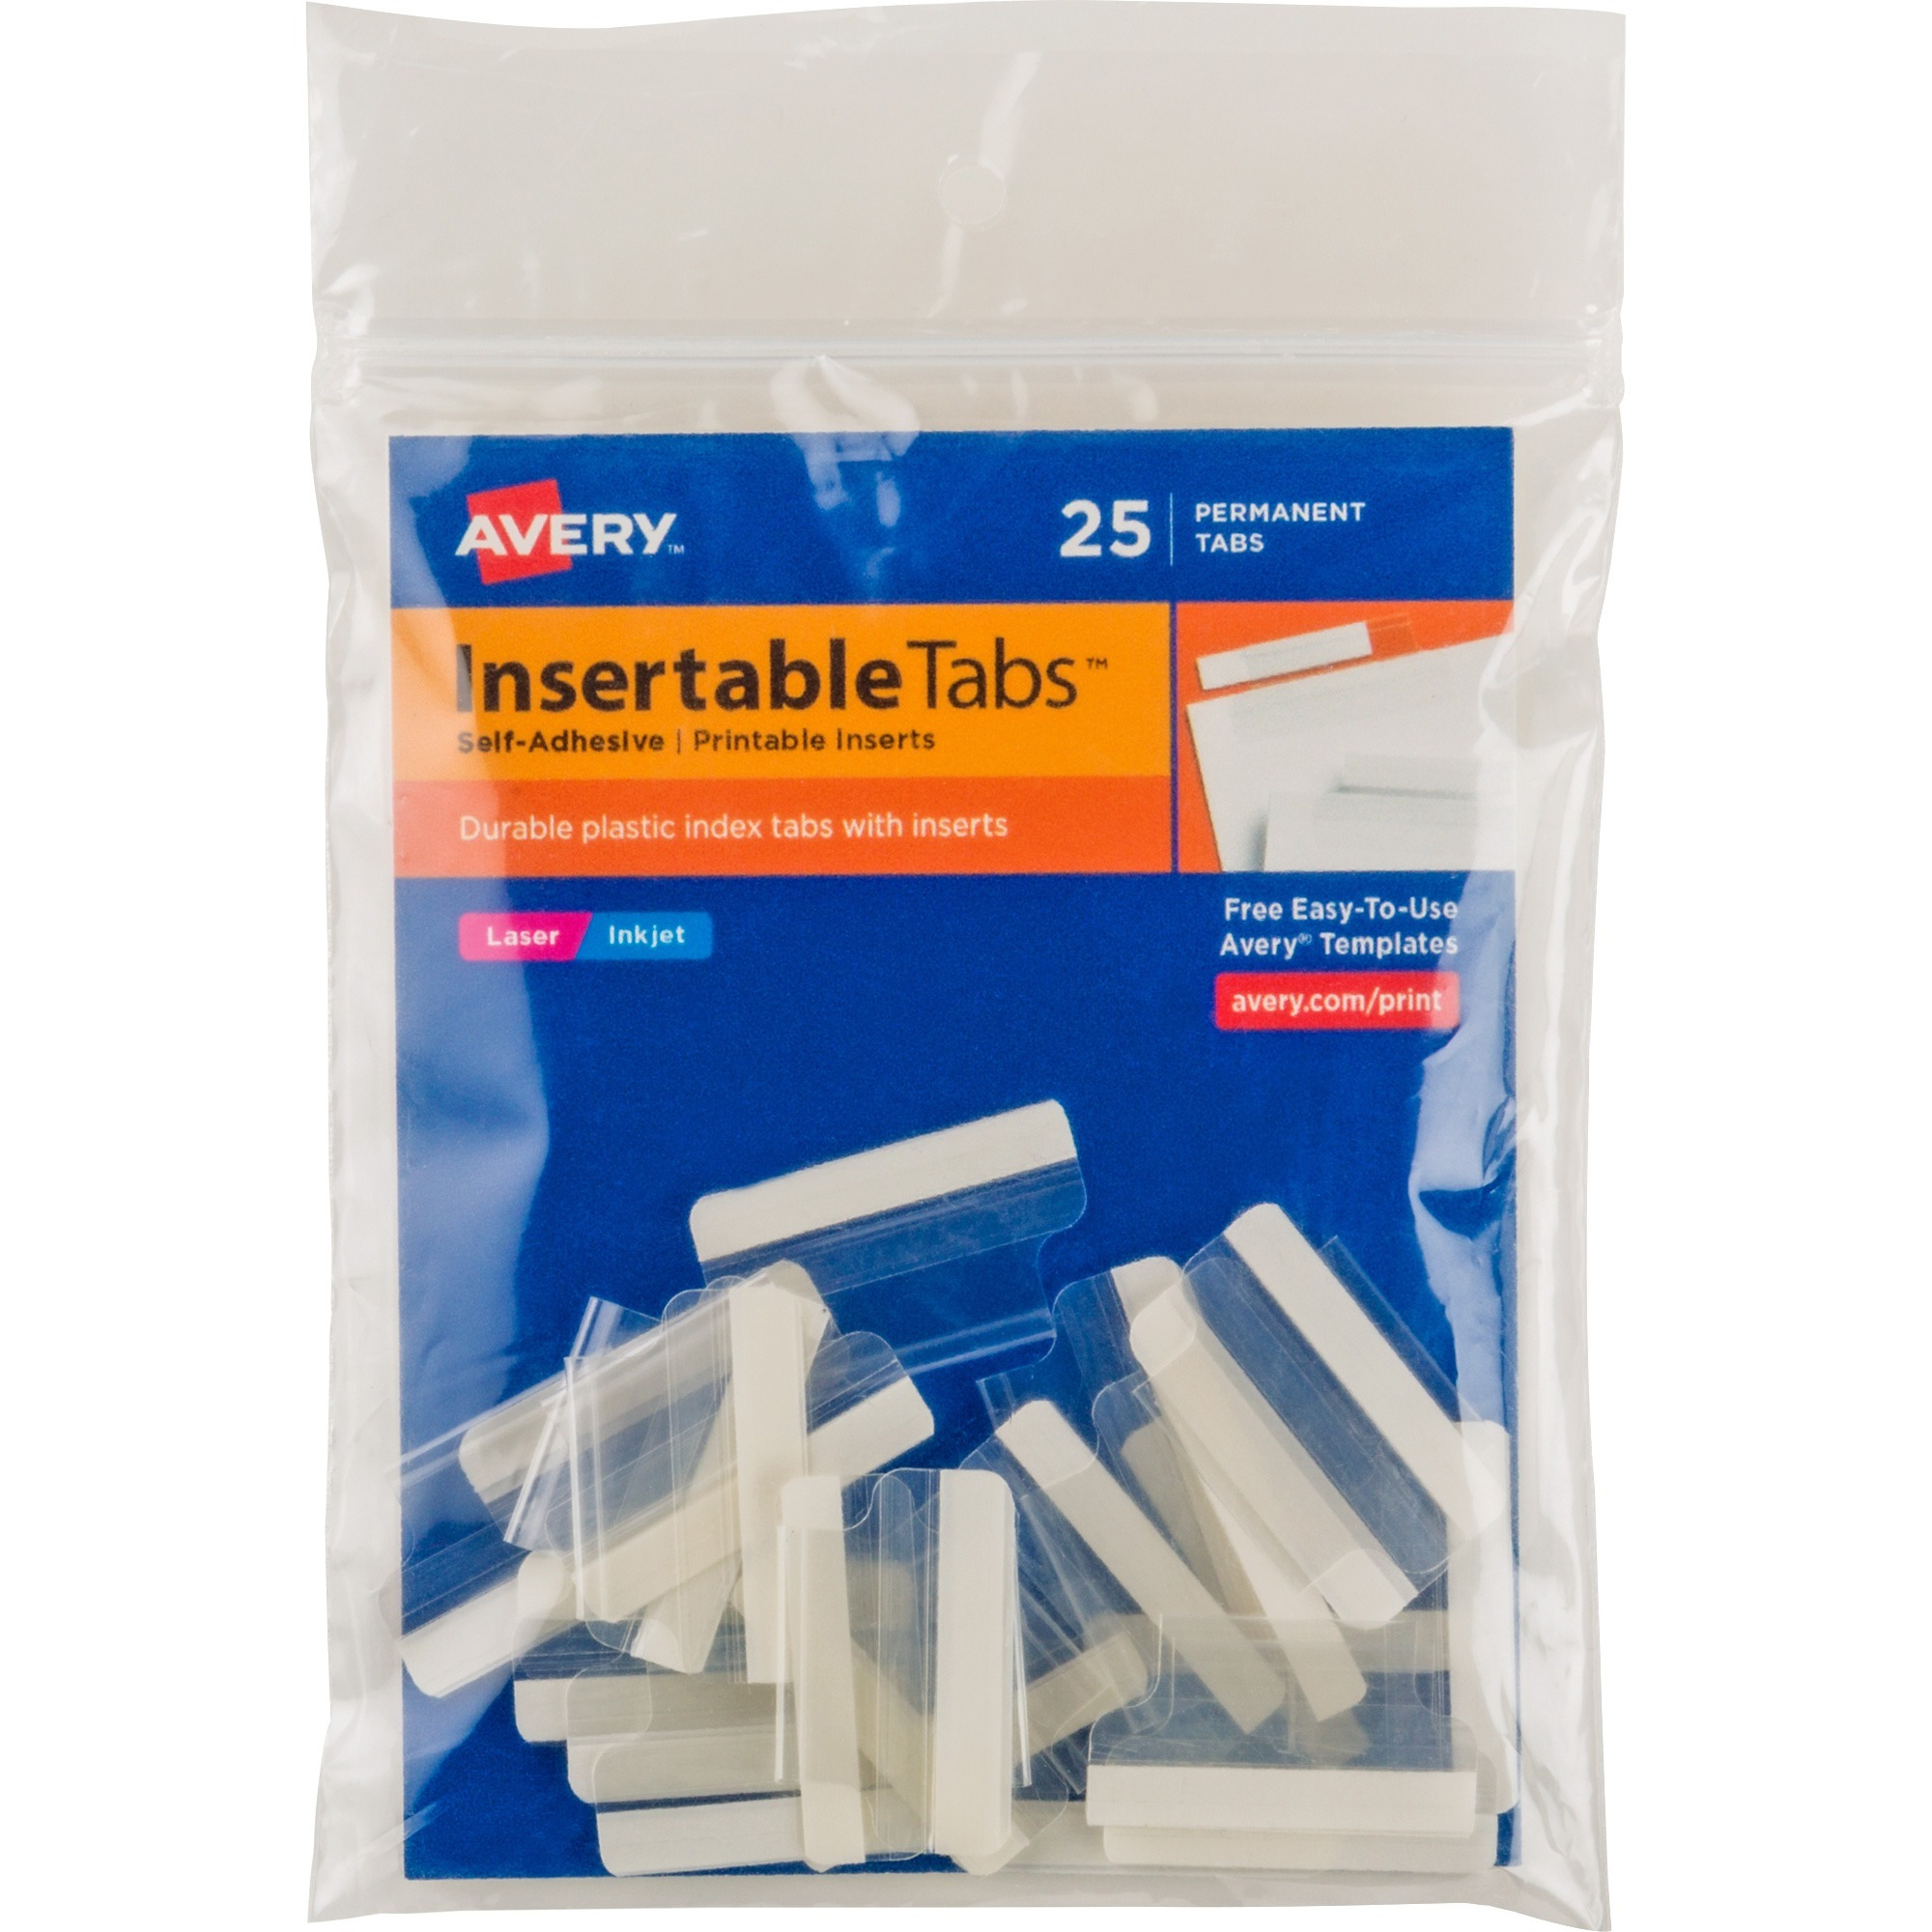 Avery Insertable Index Tabs with Printable Inserts, One, Clear Tab, 25/Pack